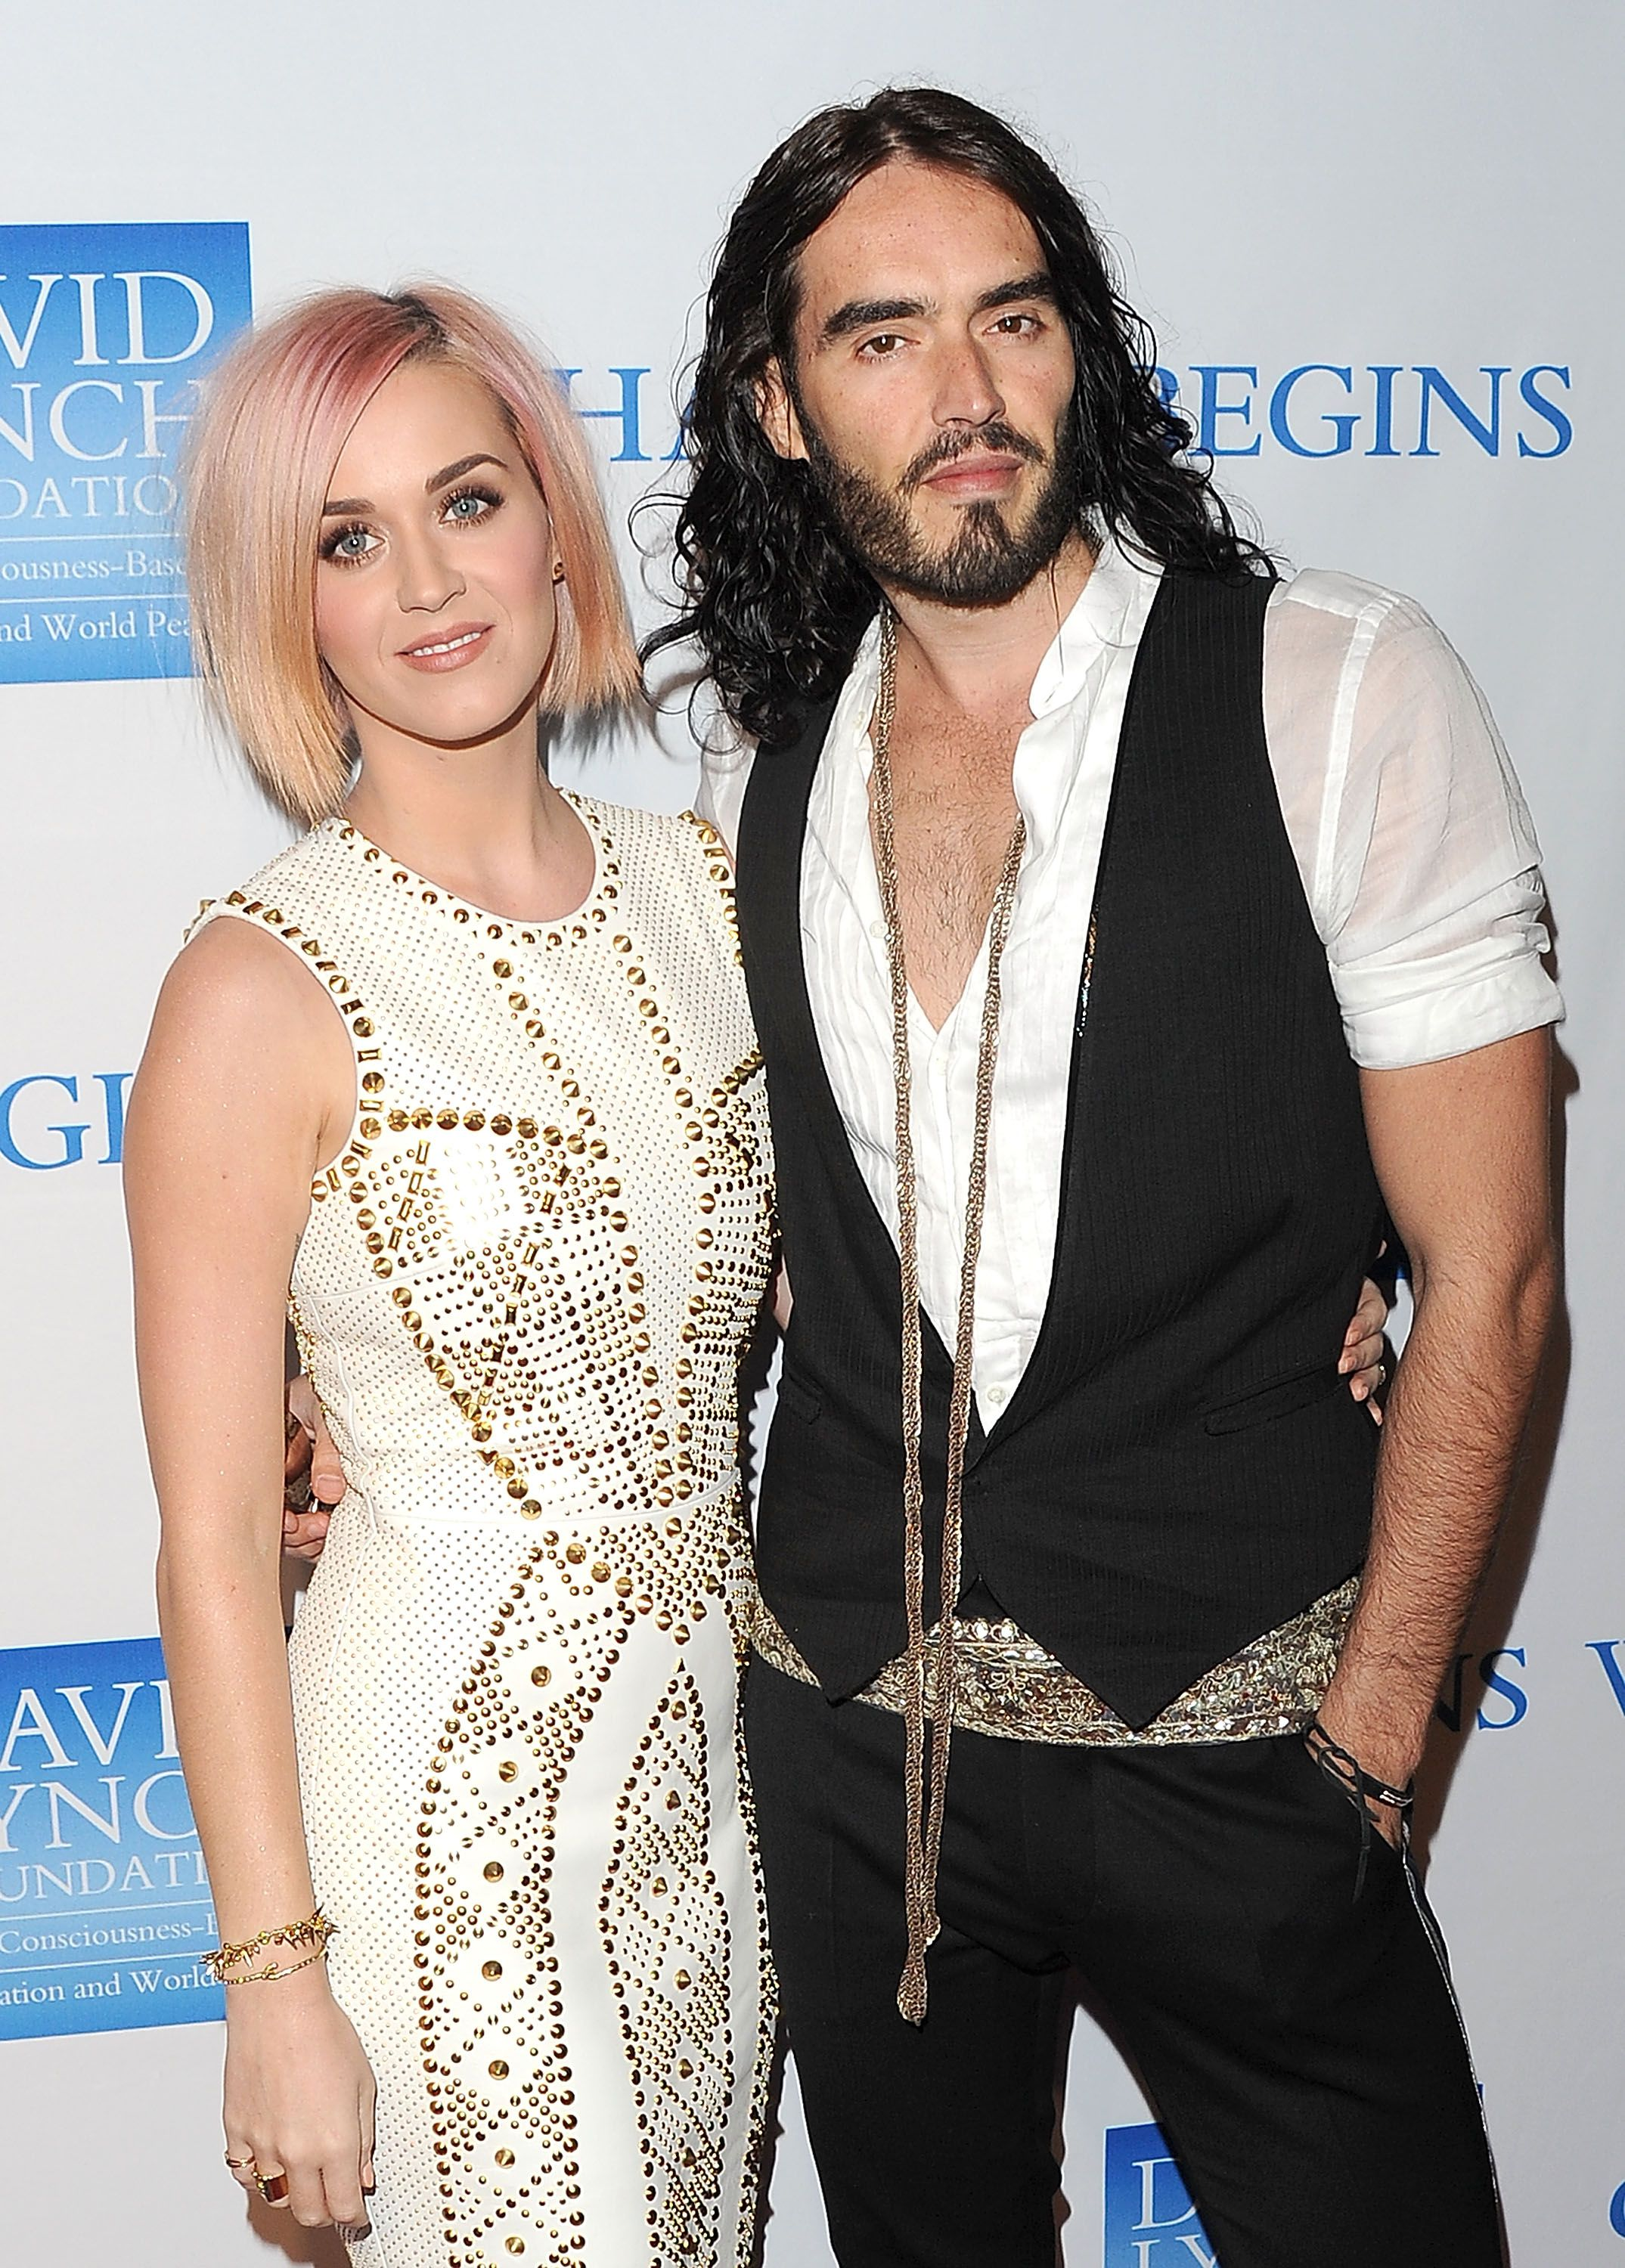 Katy Perry and her ex-husband Russel Brand / Getty Images